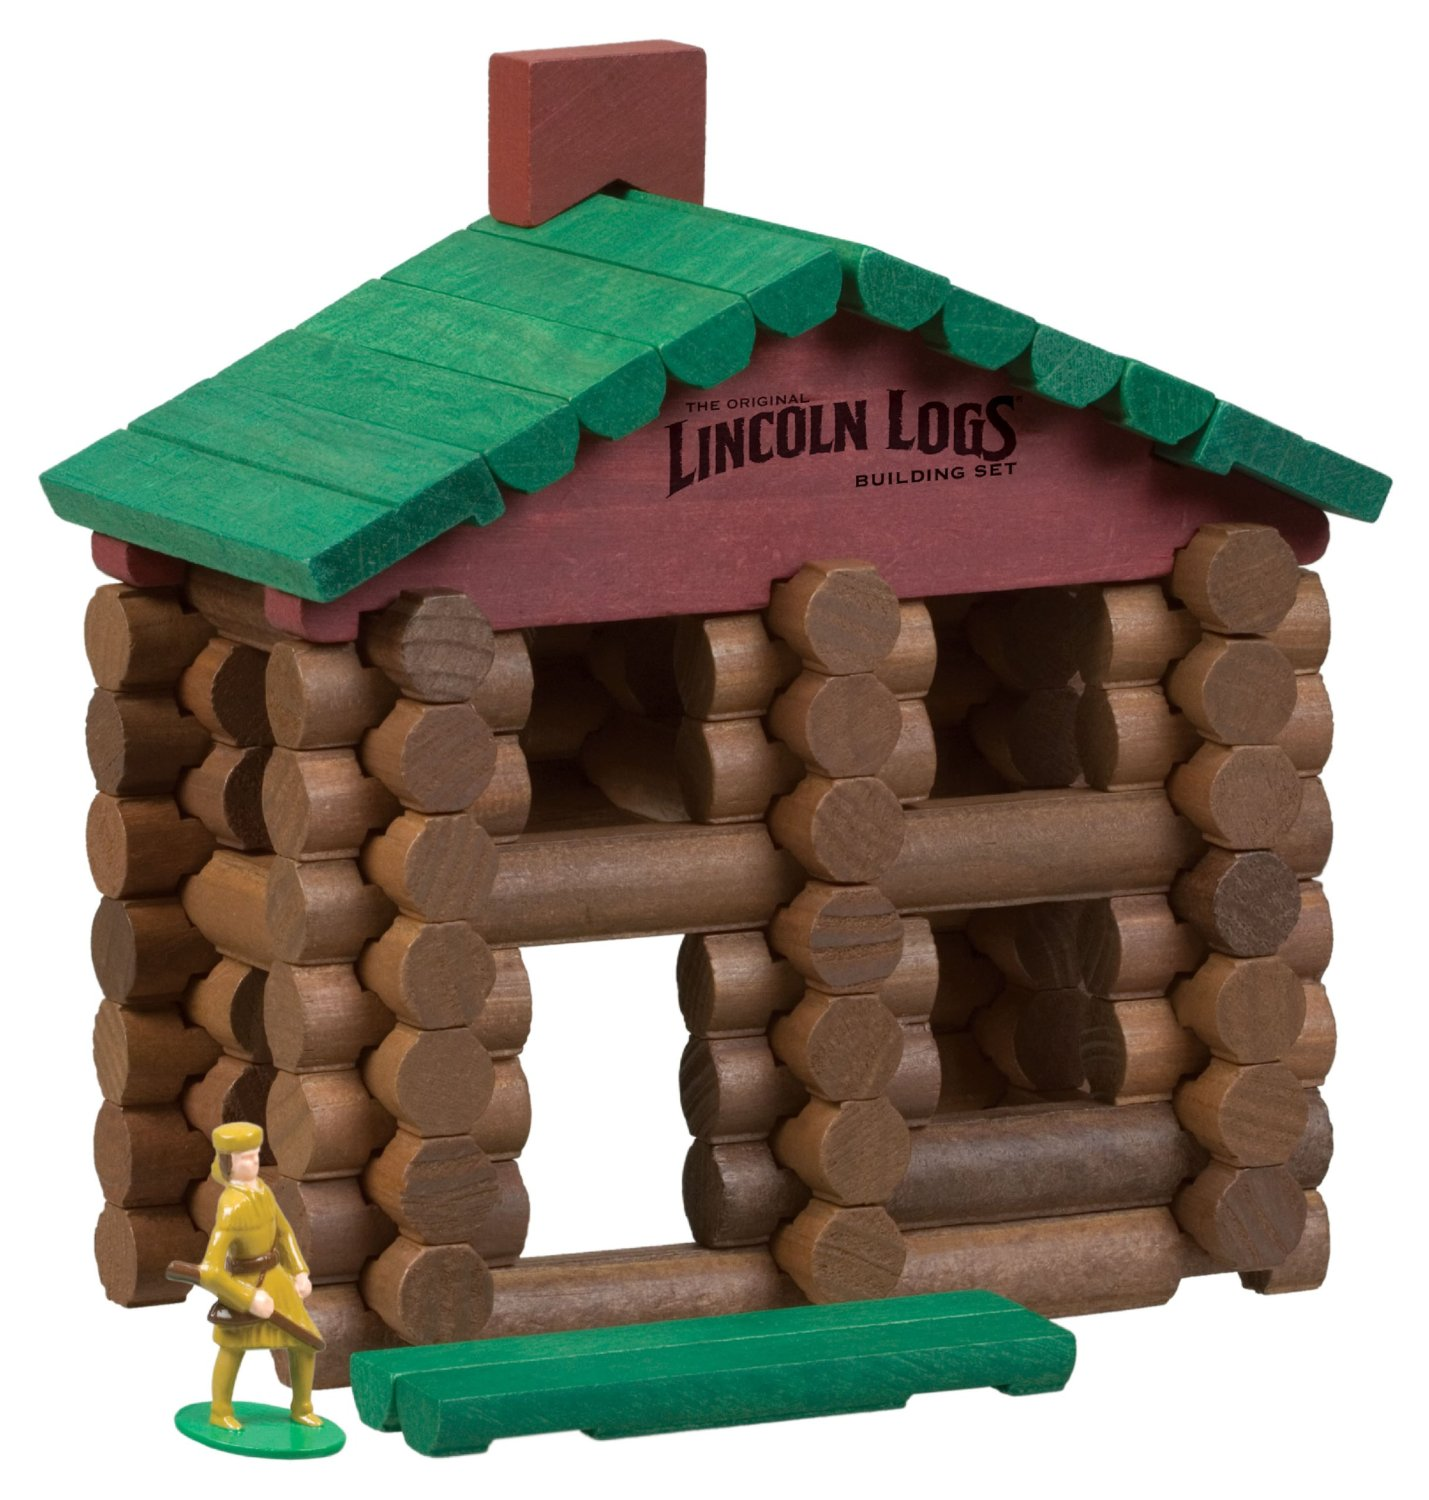 Classic Building Toys for Kids that LAST.